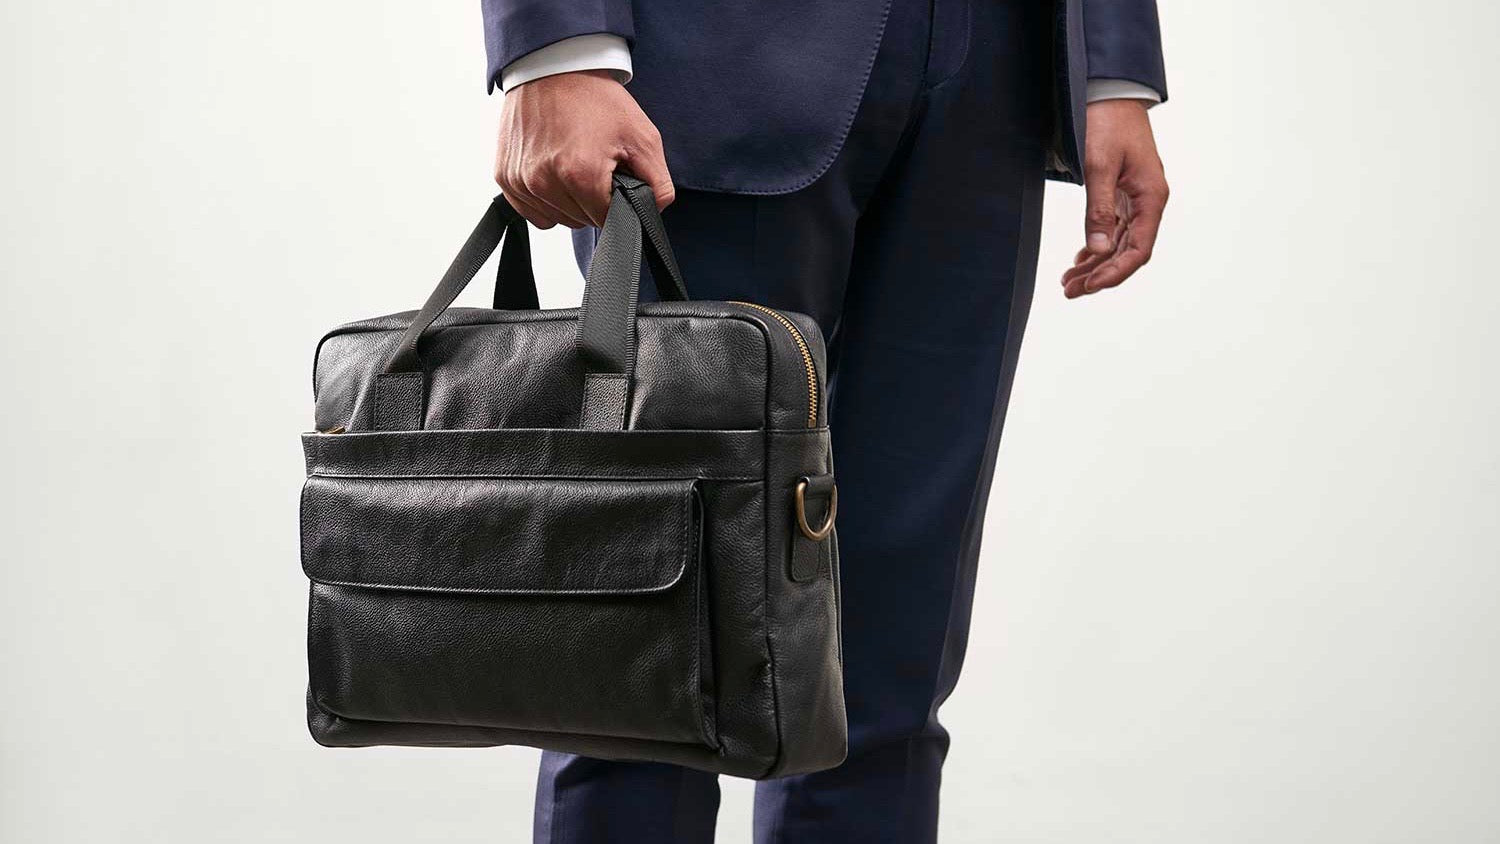 man-carrying-leather-briefcase